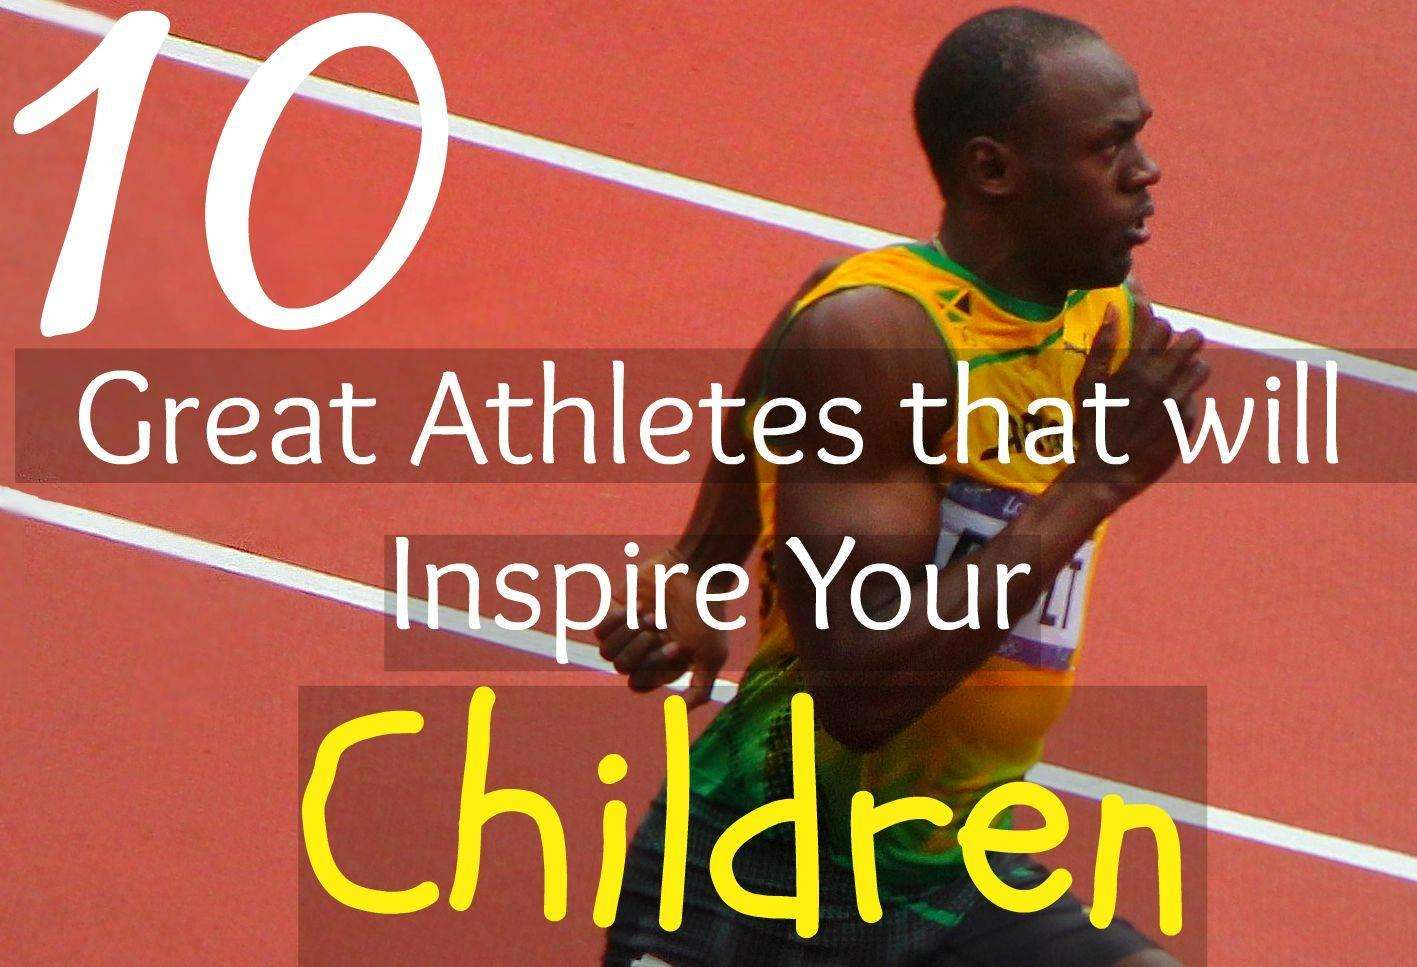 10 Great Athletes that Will Inspire Your Children, athletes that inspire kids LS%, daily-dad%